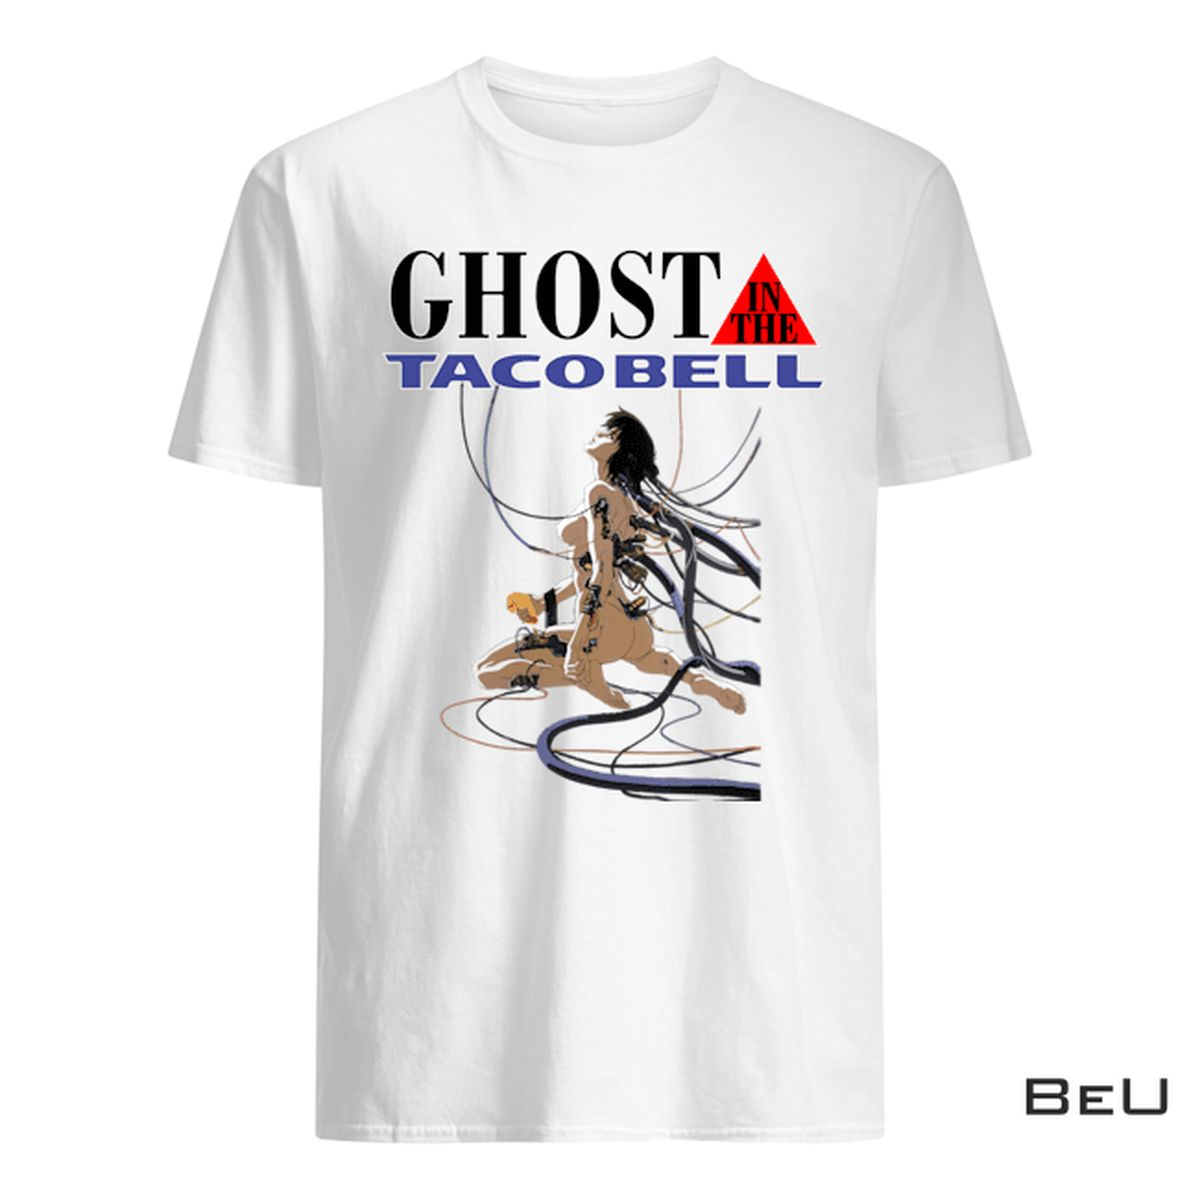 Ghost In The Shell Ghost In The Taco Bell Shirt, Hoodie, Tank Top